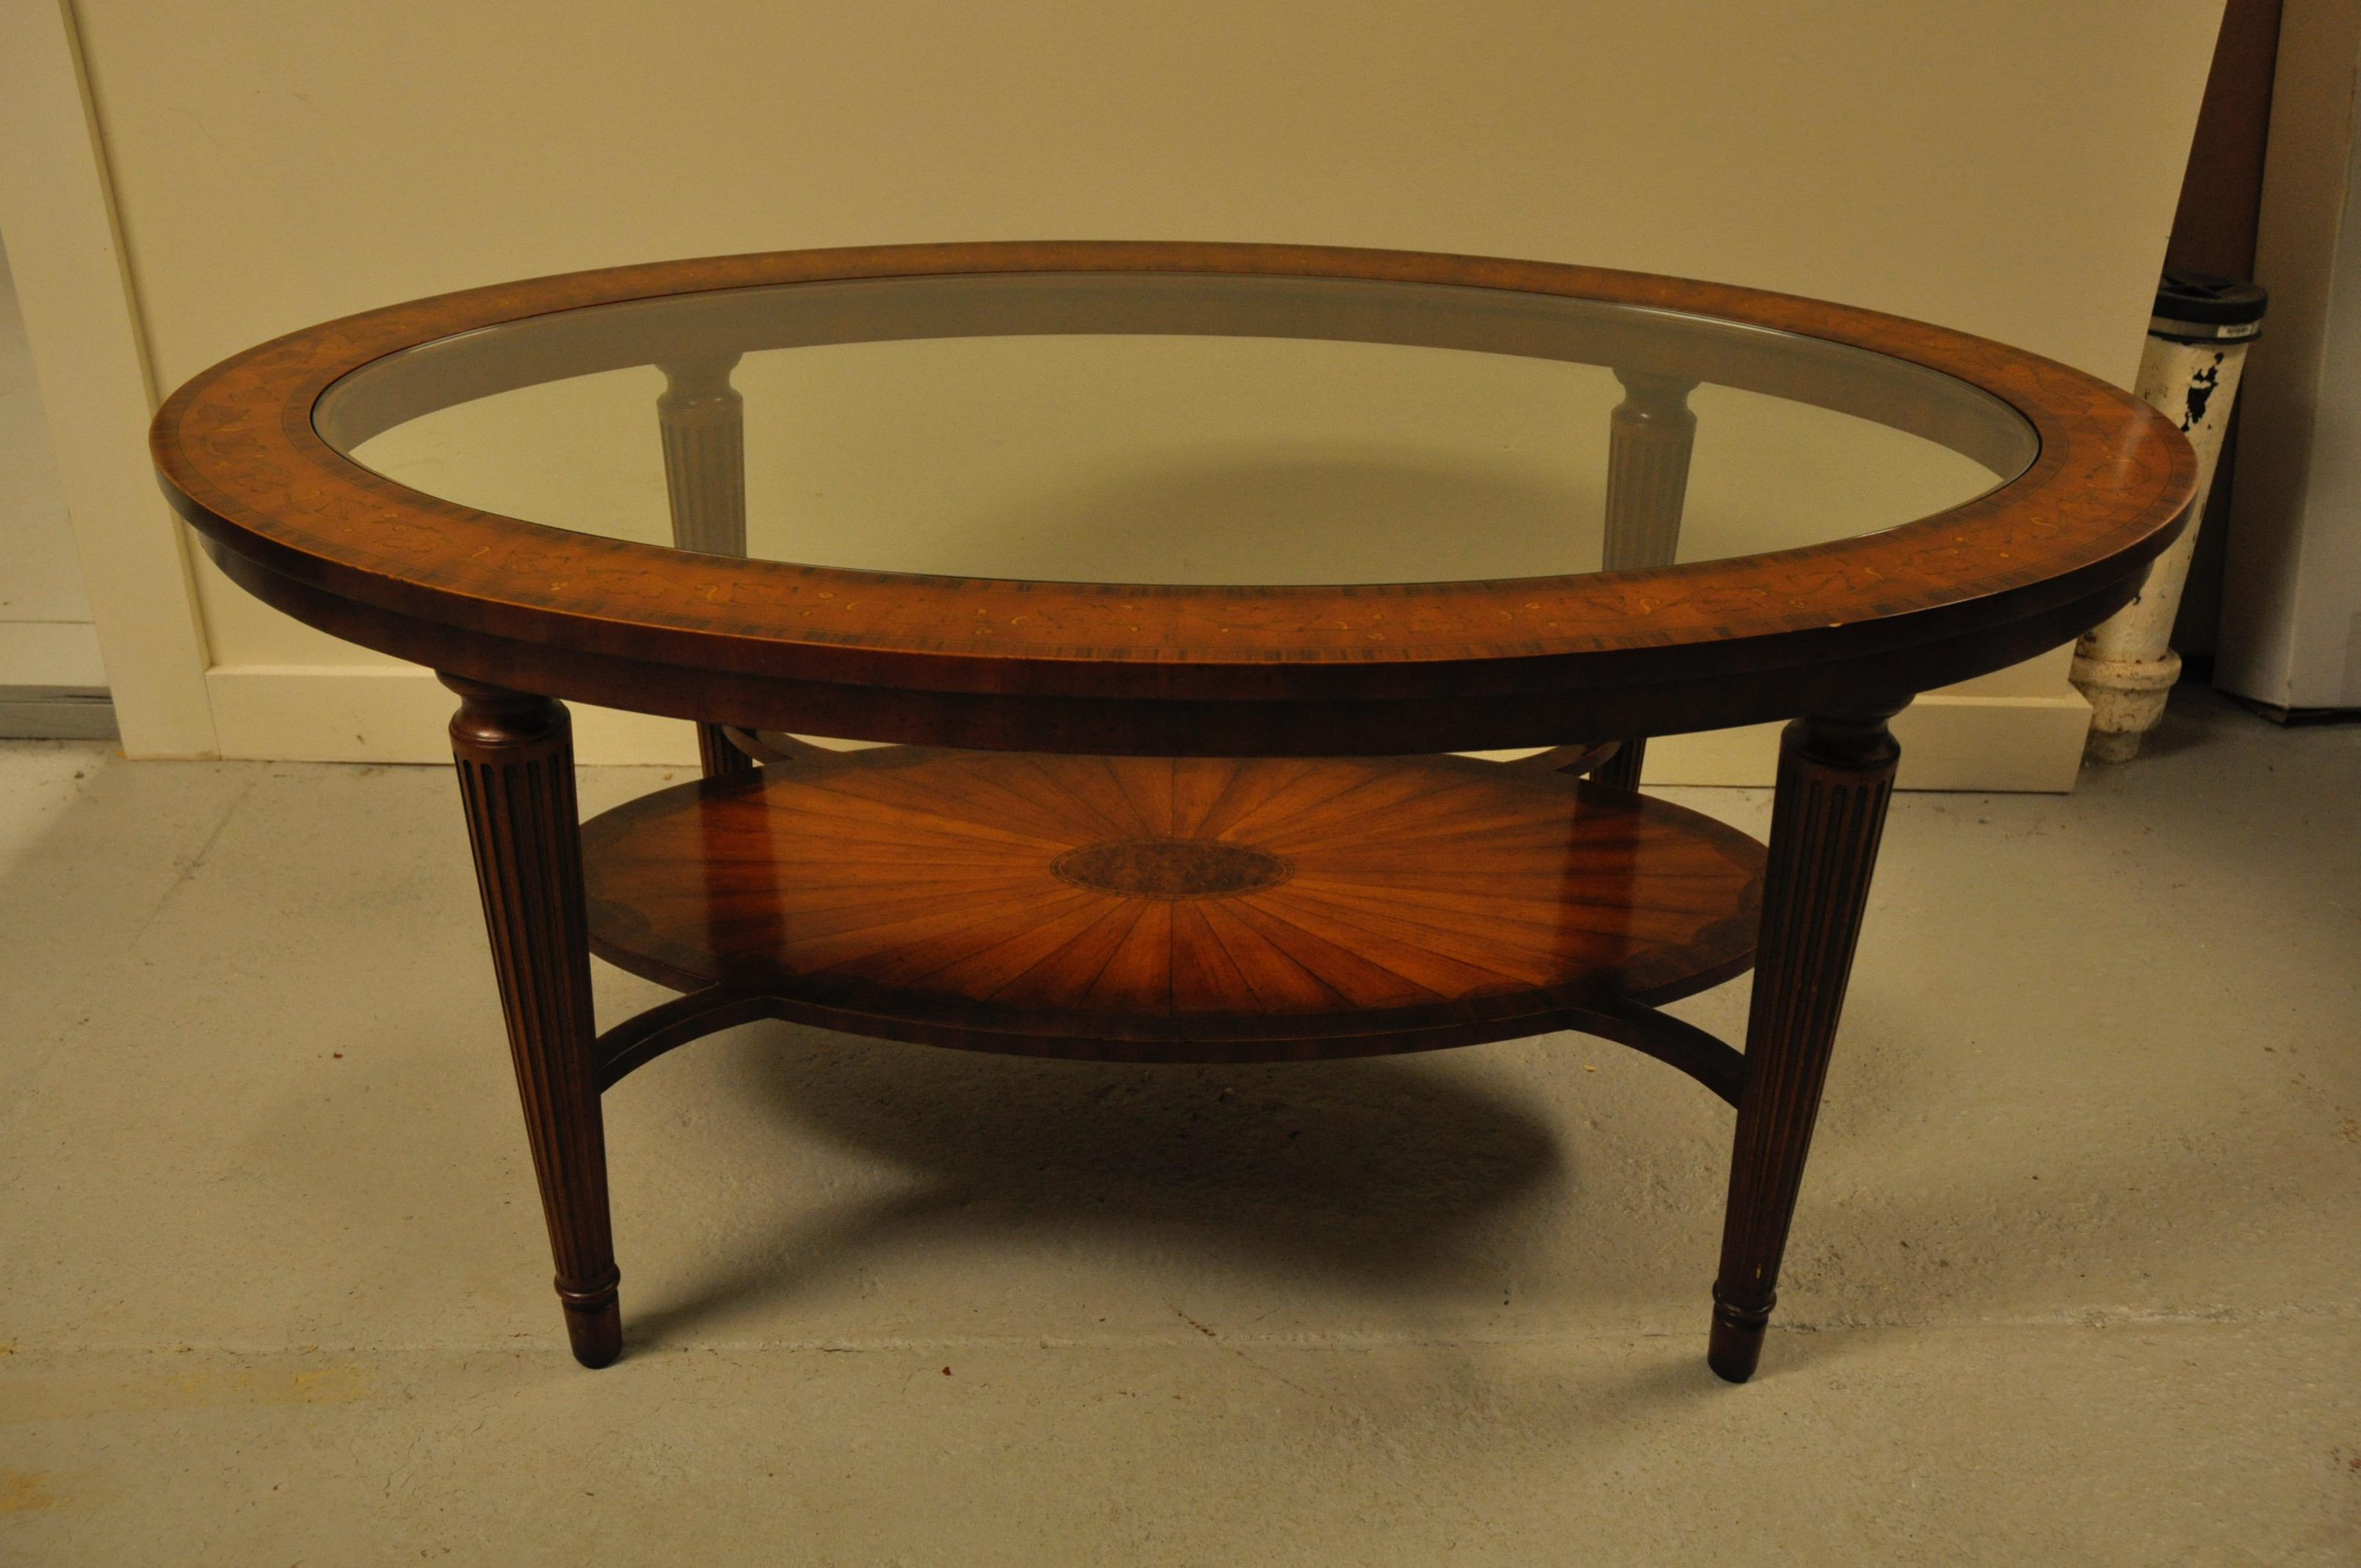 Maitland Smith Glass & Mahogany Coffee Table  Chairish. Rubbermaid Large Drawer. Adirondack Table. 8 Inch Deep Console Table. Shell Table. Zebra Table Runner. Help Desk It Jobs. Bathroom Table Stand. Air Hockey Tables